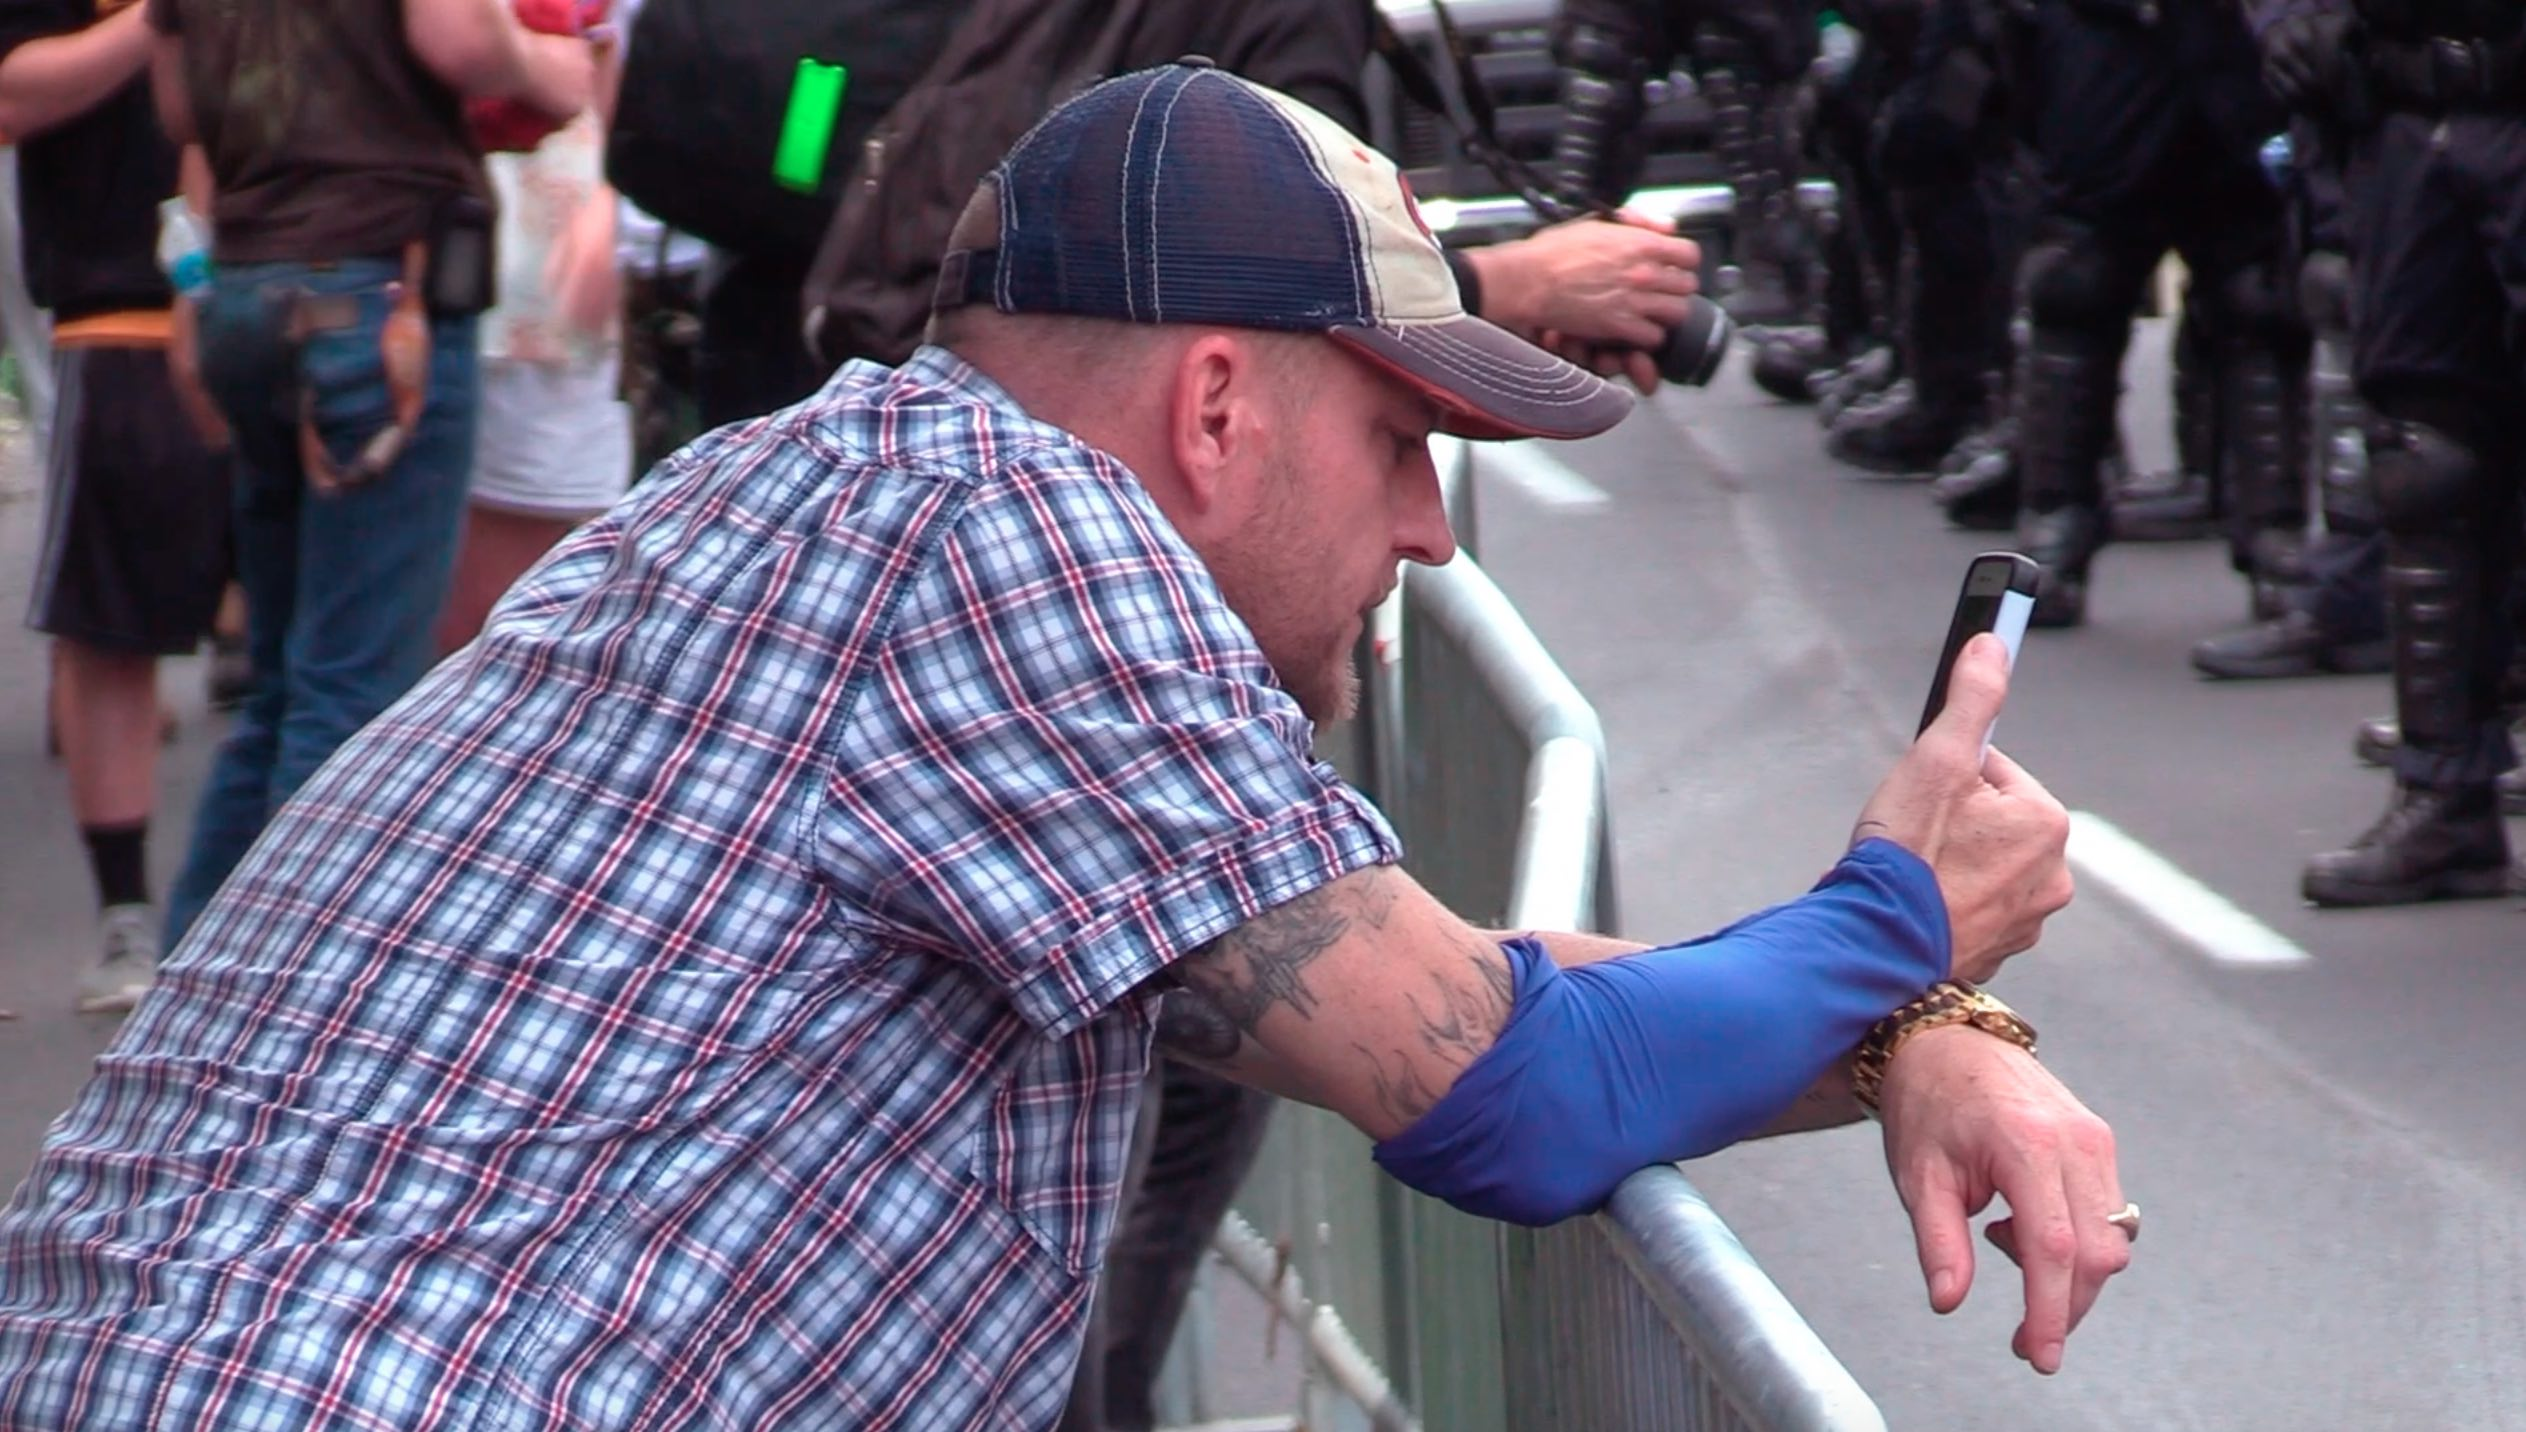 Anti-racist protesters offered this man $1,000 cash to remove his blue armband to prove he wasn't covering a neo-Nazi tattoo. He refused.